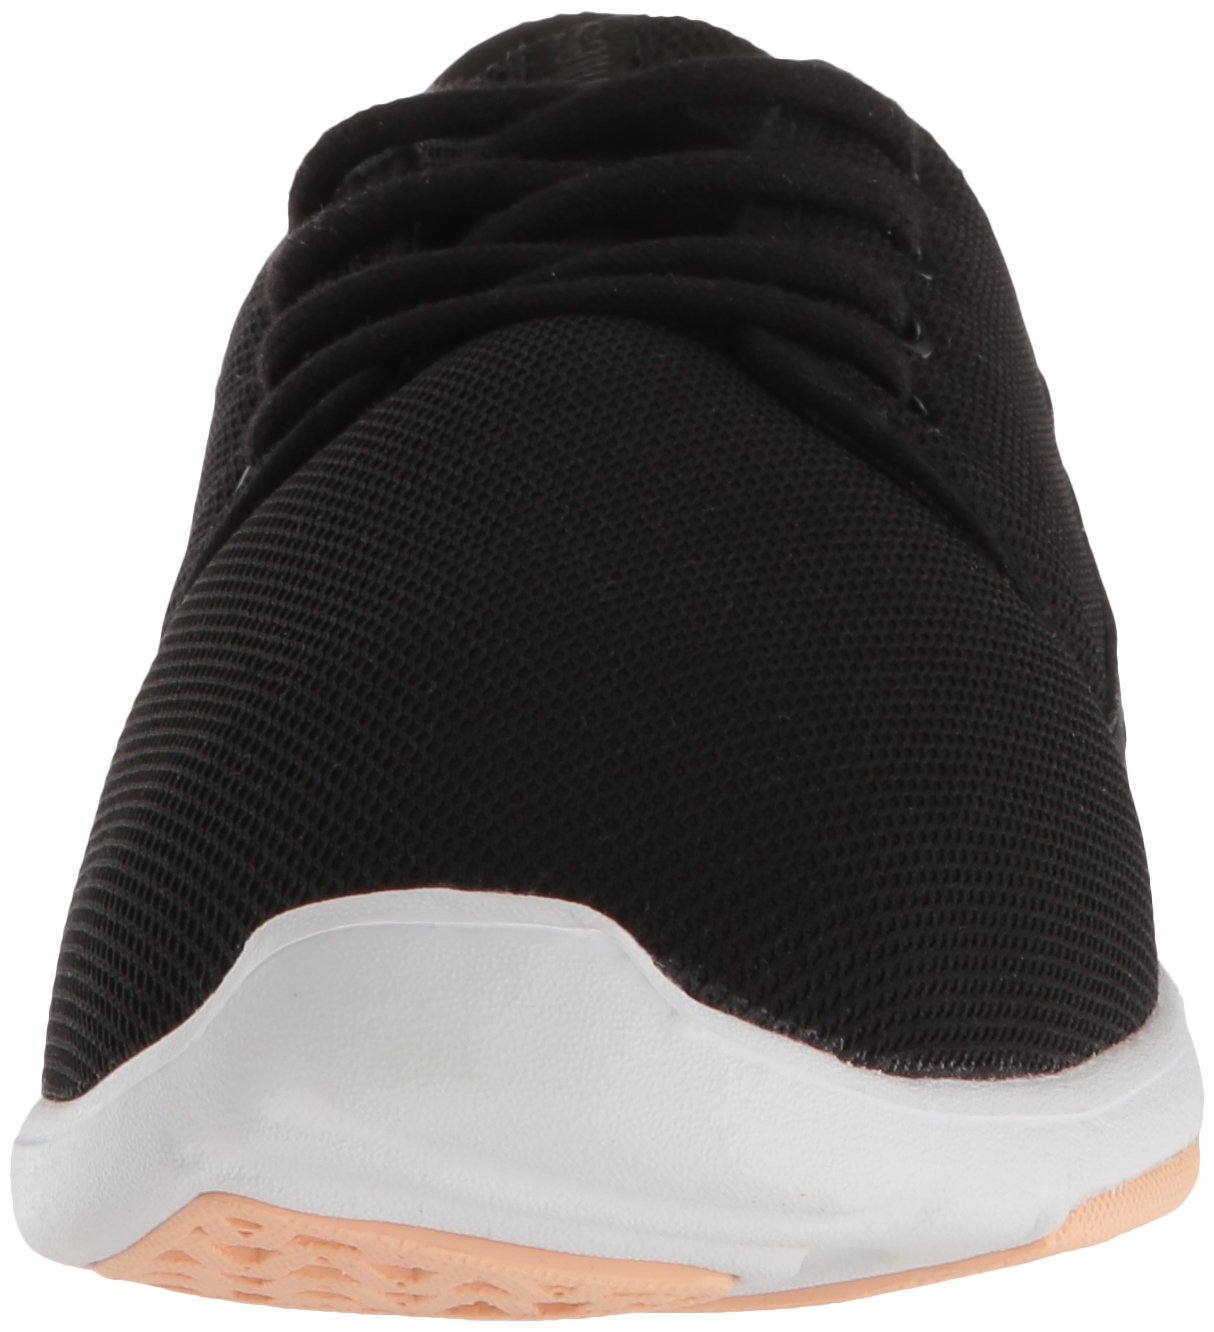 Etnies Women's Scout W's Skate Shoe B076CSSNFD 7.5 B(M) US|Black/Pink/Light Pink